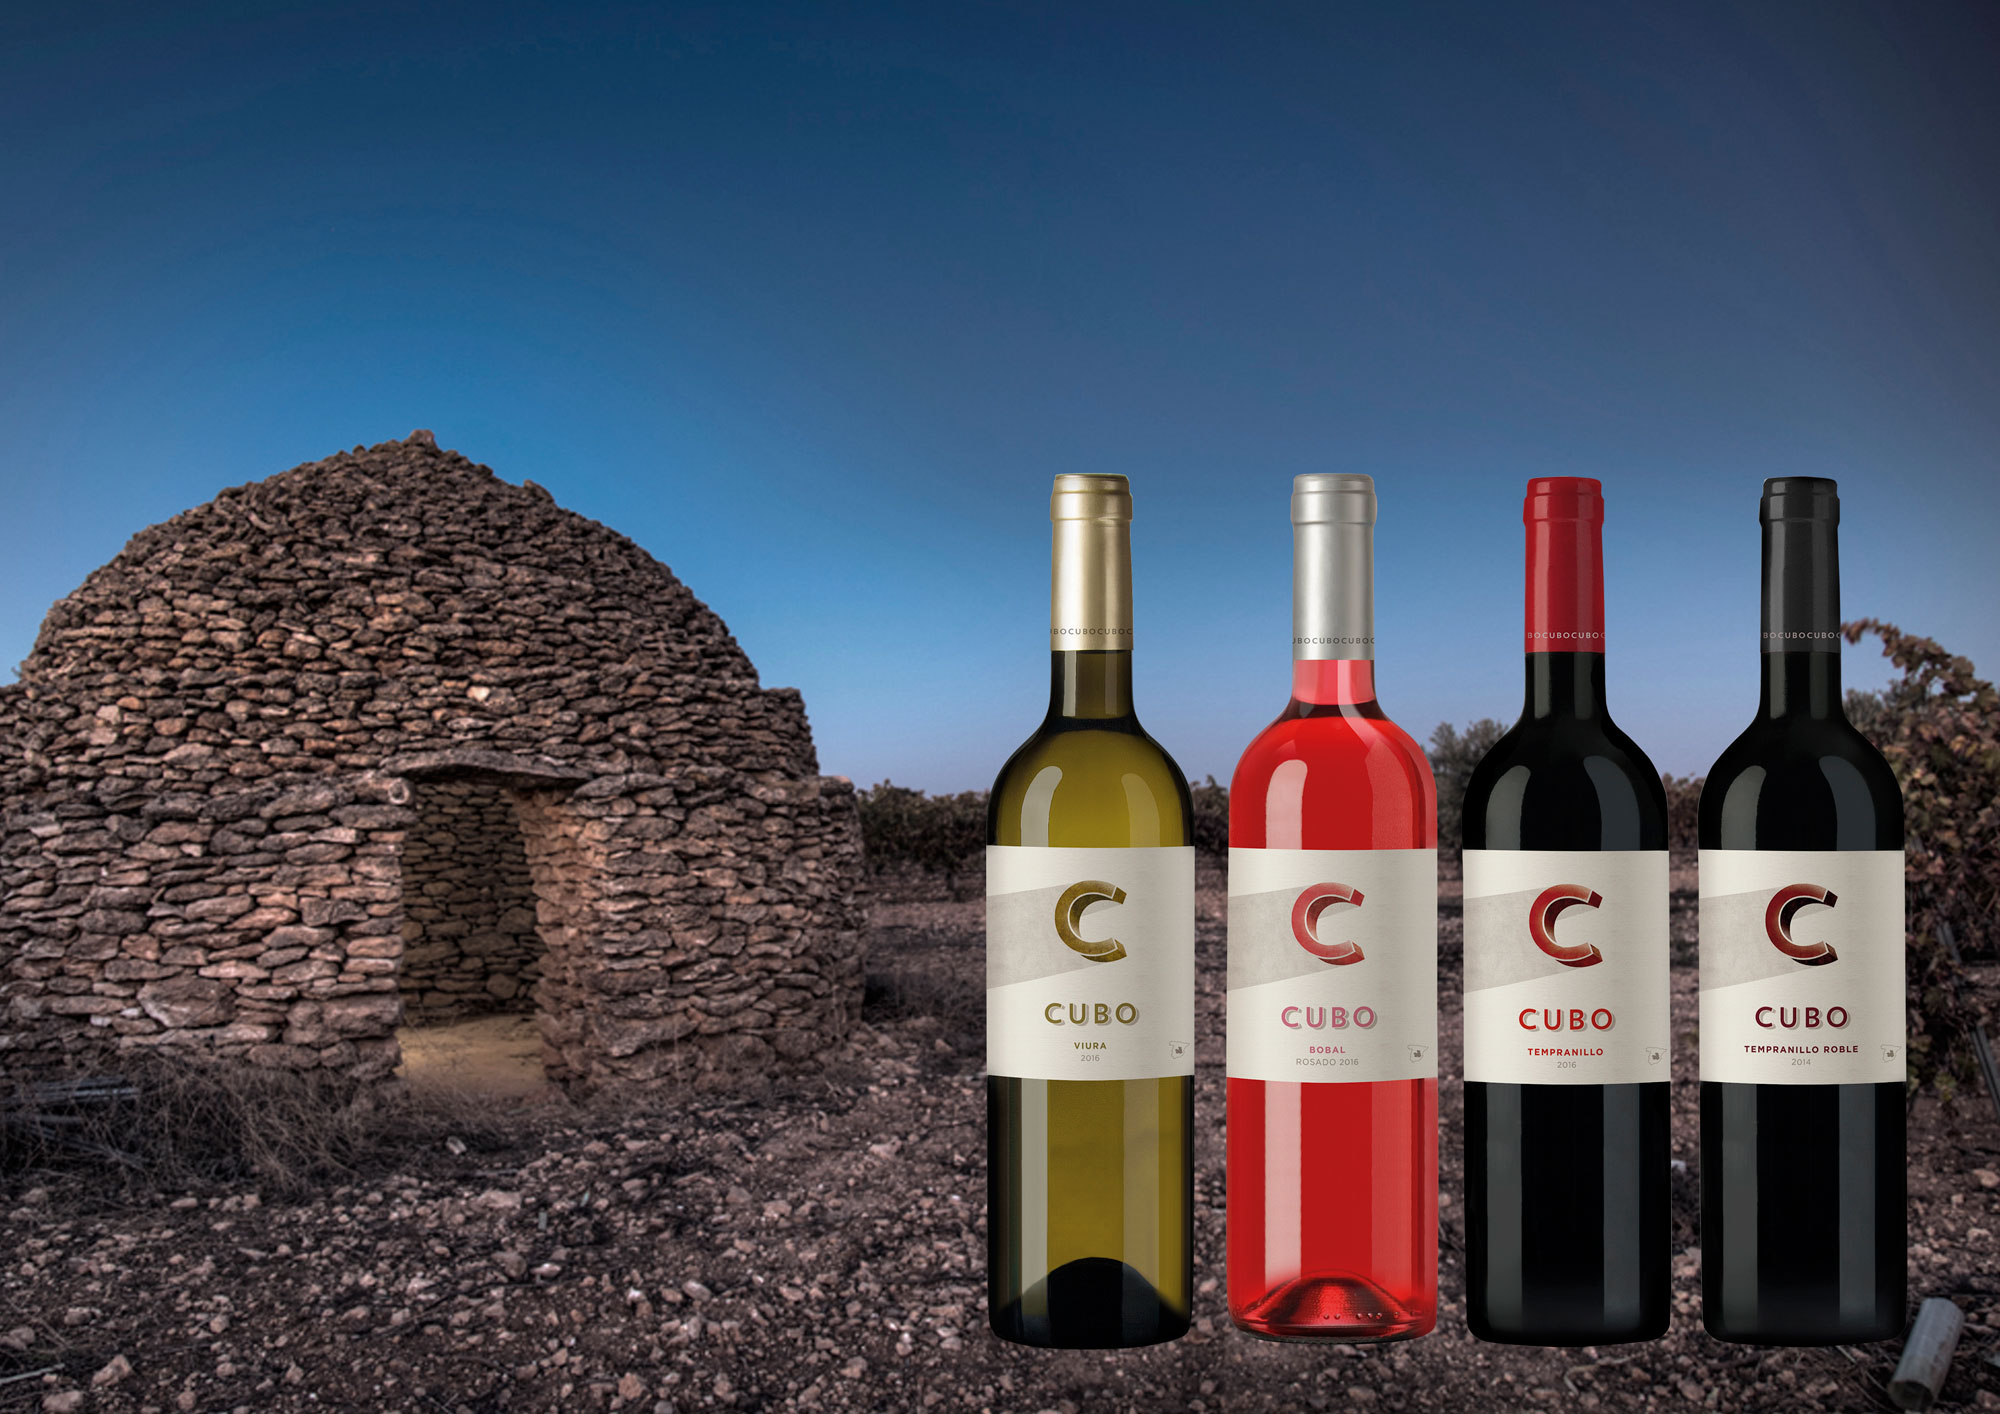 CUBO: WINES INSPIRED BY CULTURE AND LOCAL ARCHITECTURE